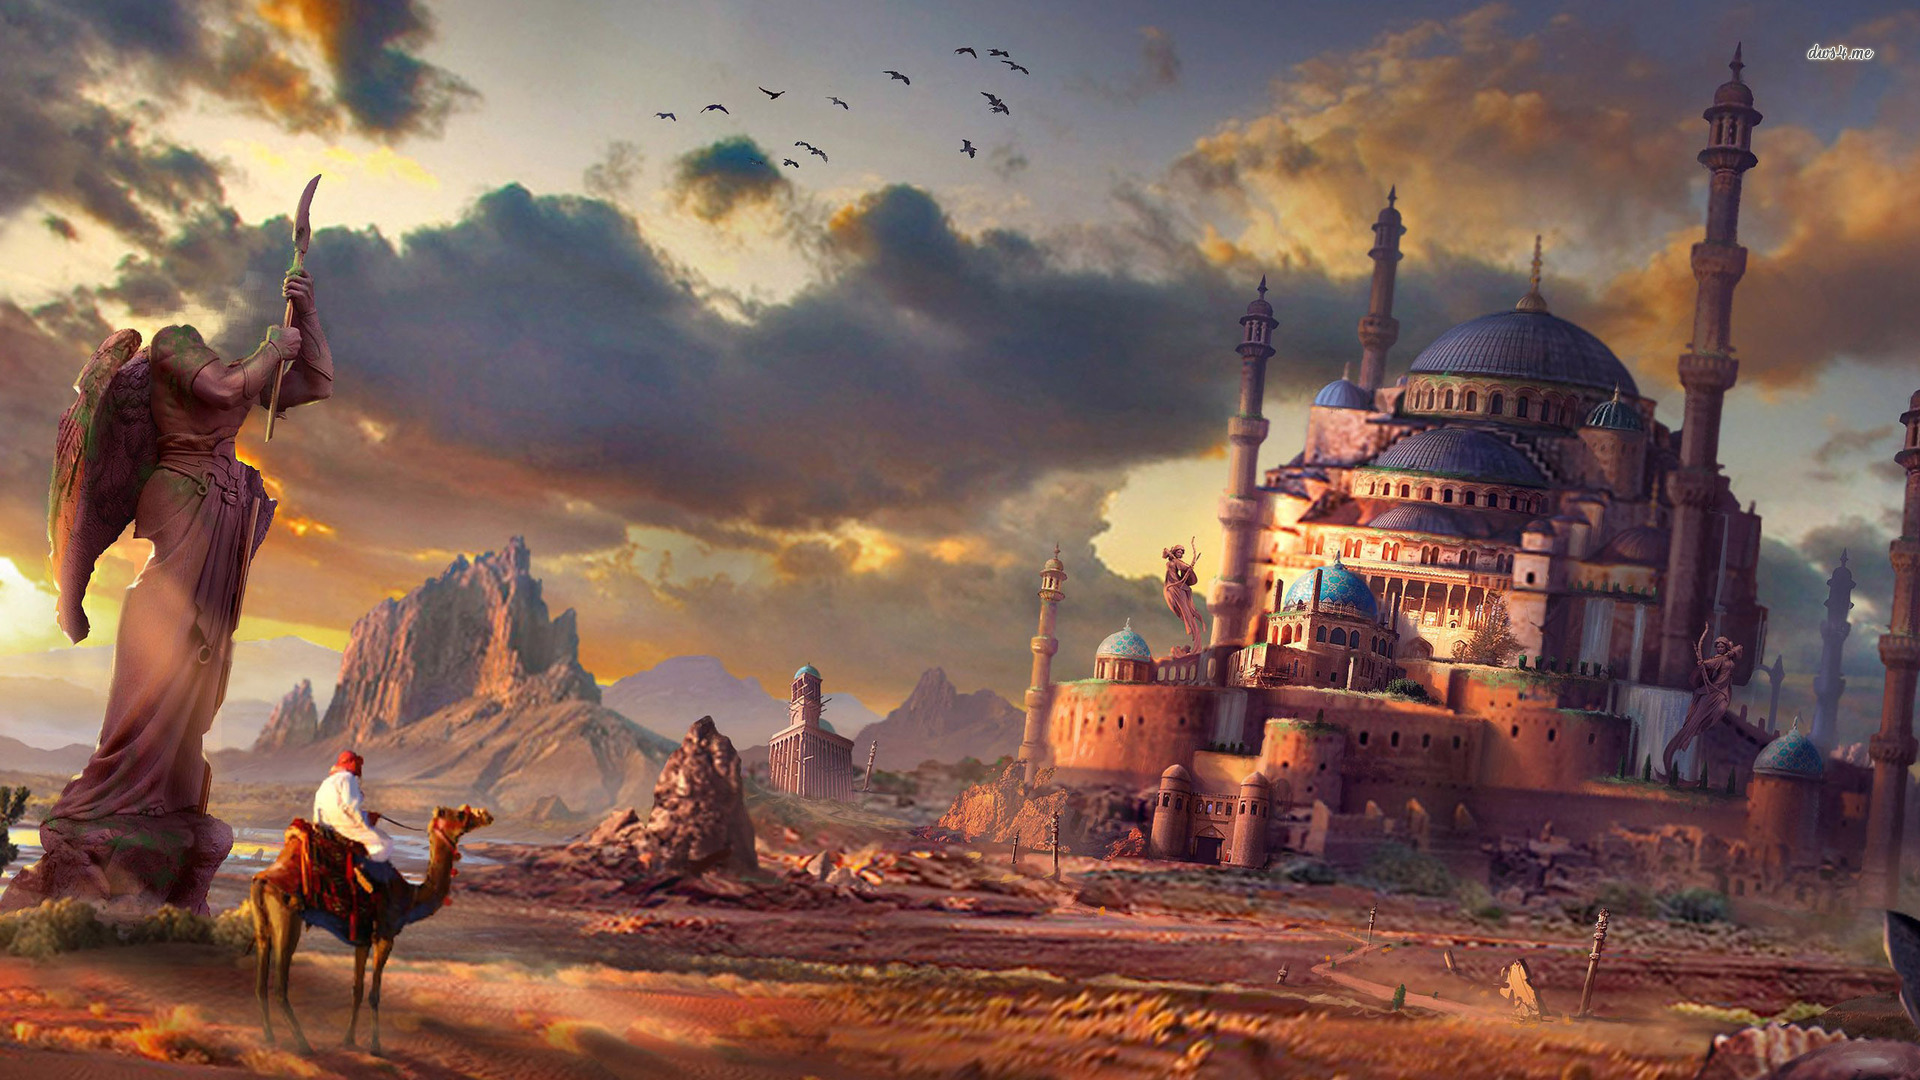 24855 travelling to the desert kingdom on a camel 1920x1080 fantasy wallpaper